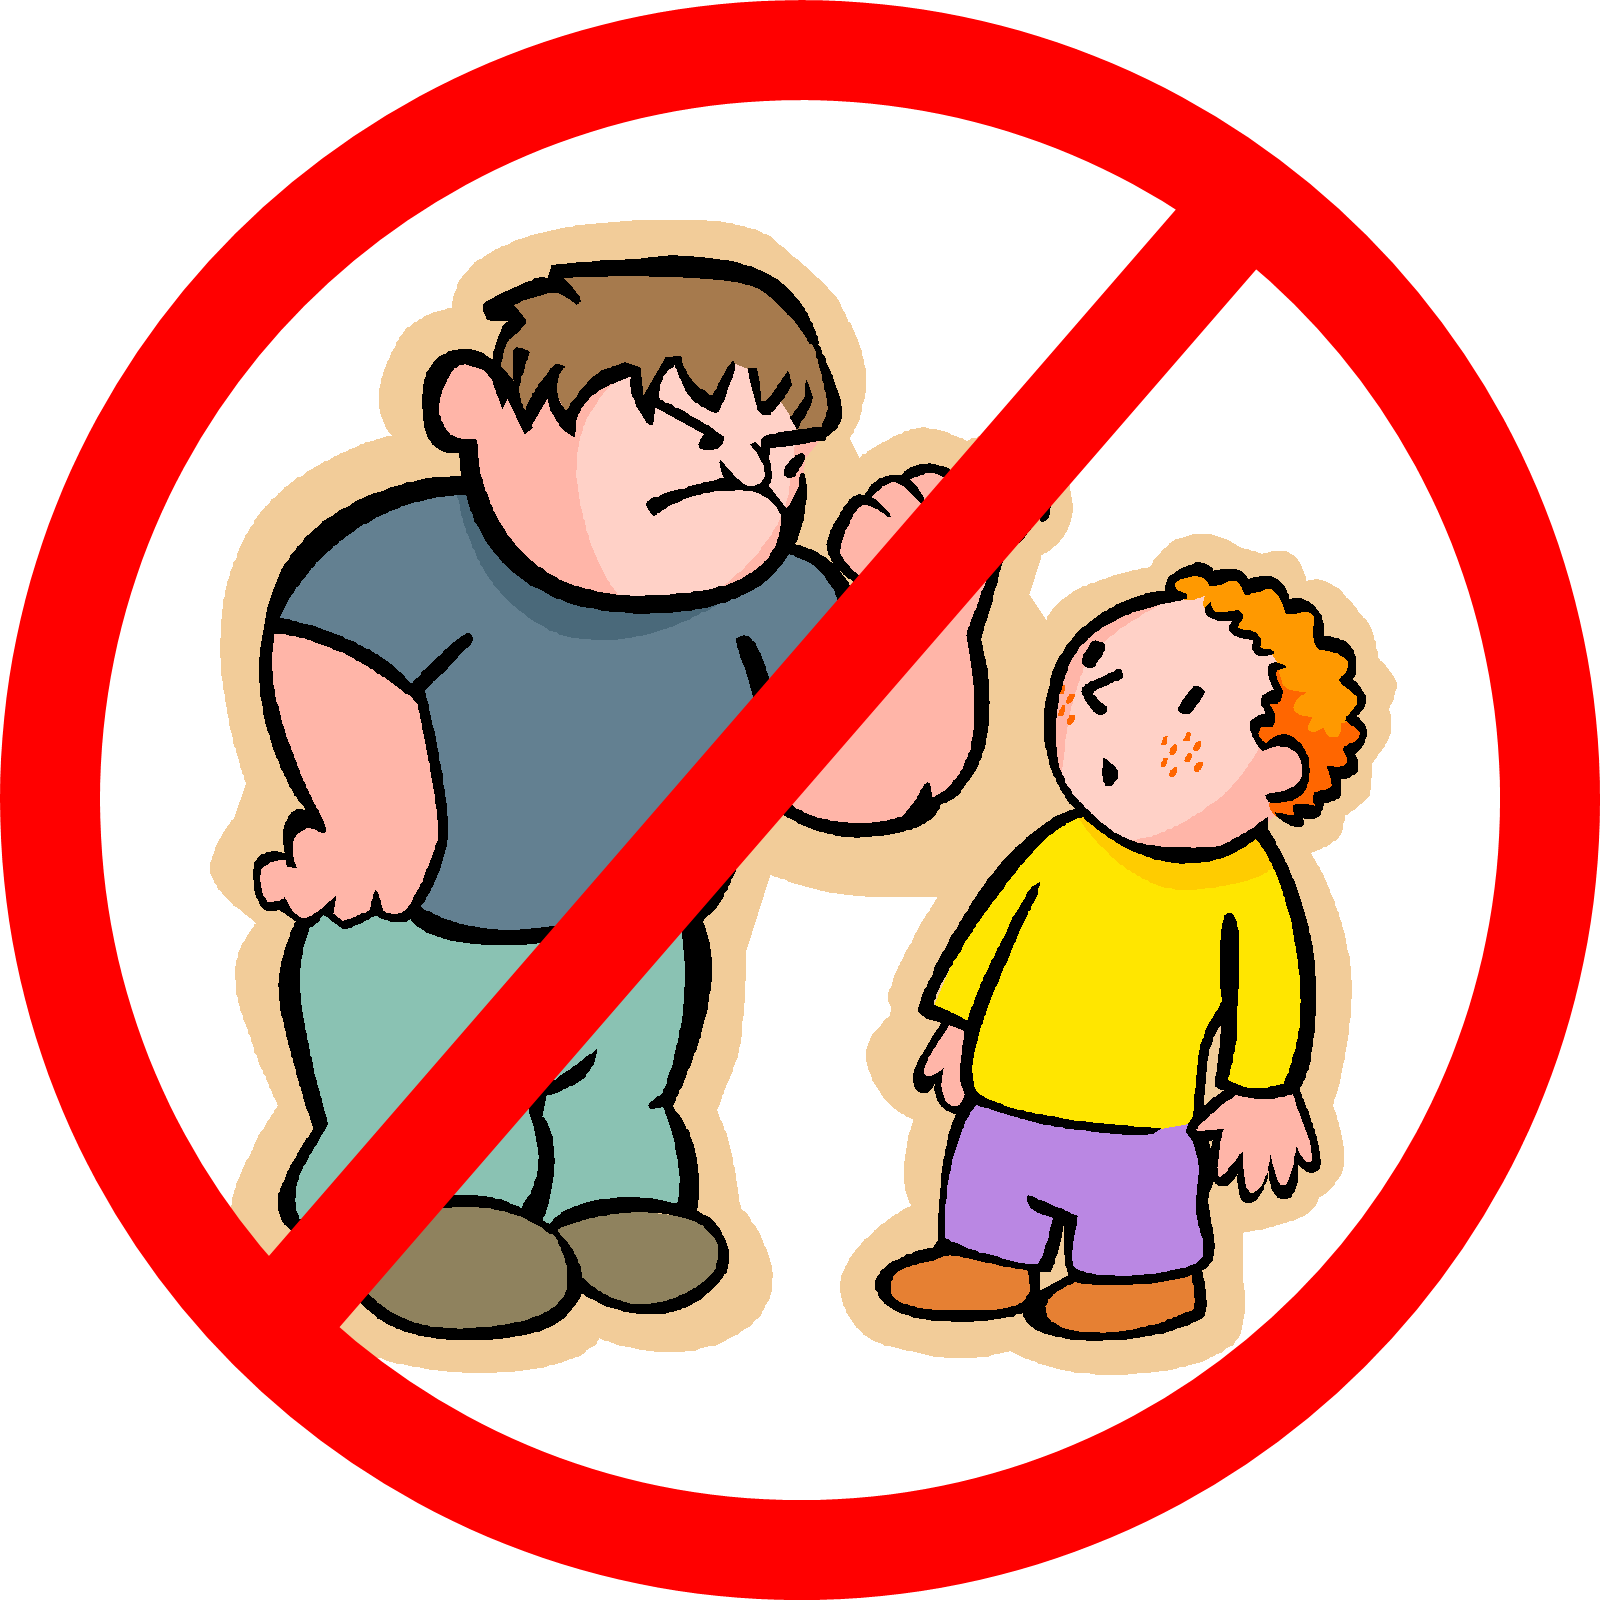 Anti Bullying Clip Art - ClipArt Best